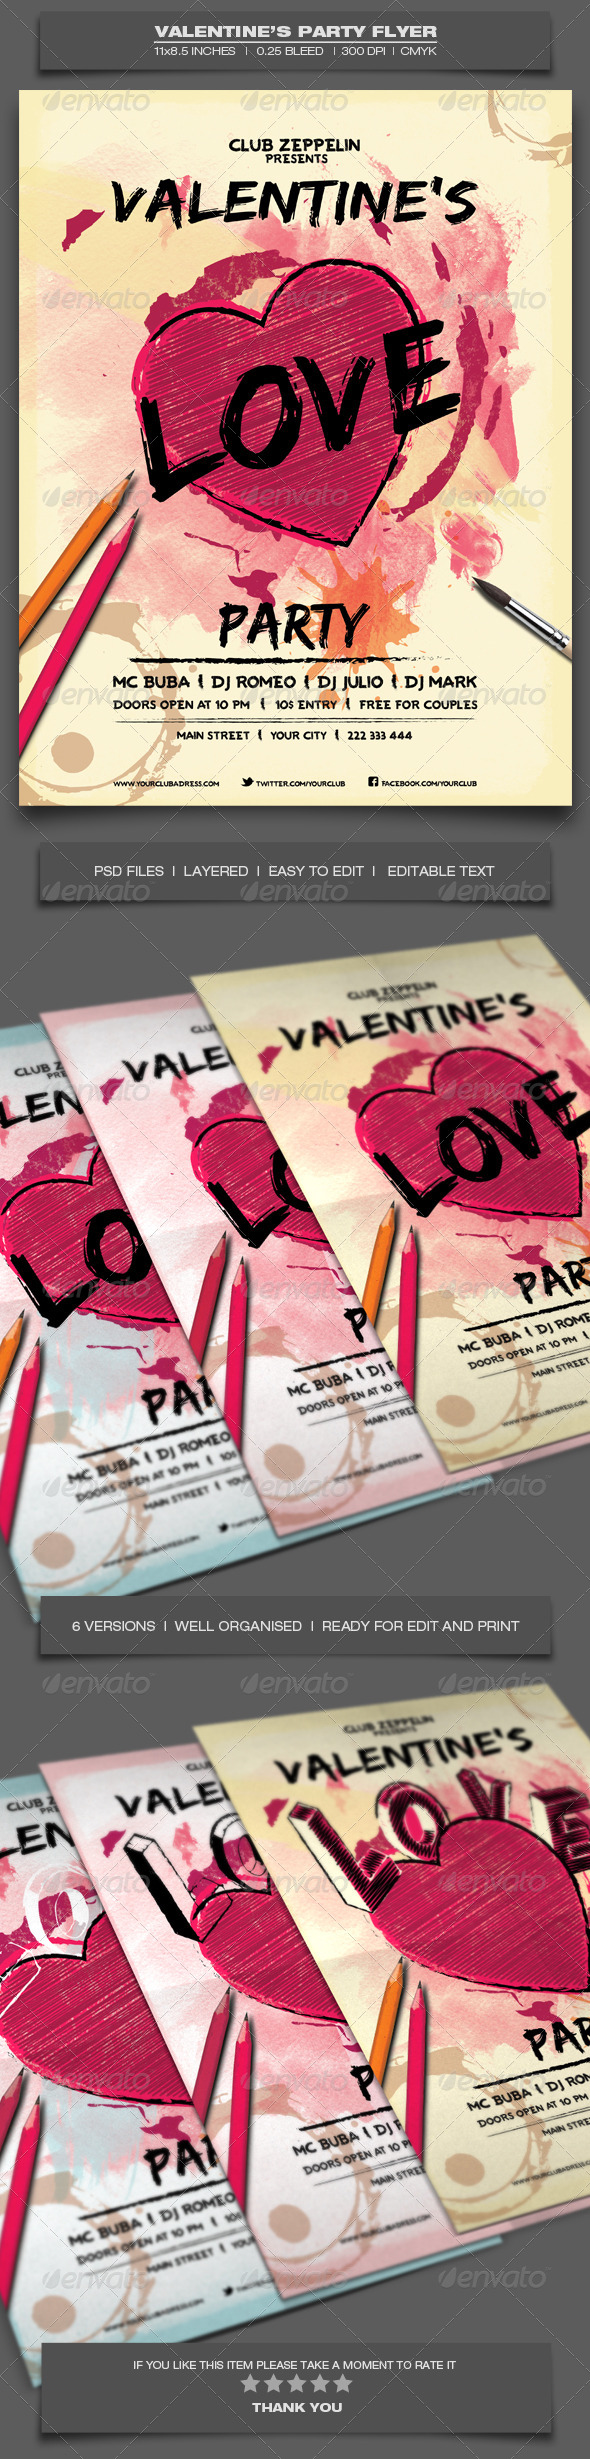 Valentine's Day Party - Event Flyer Template 9 - Holidays Events